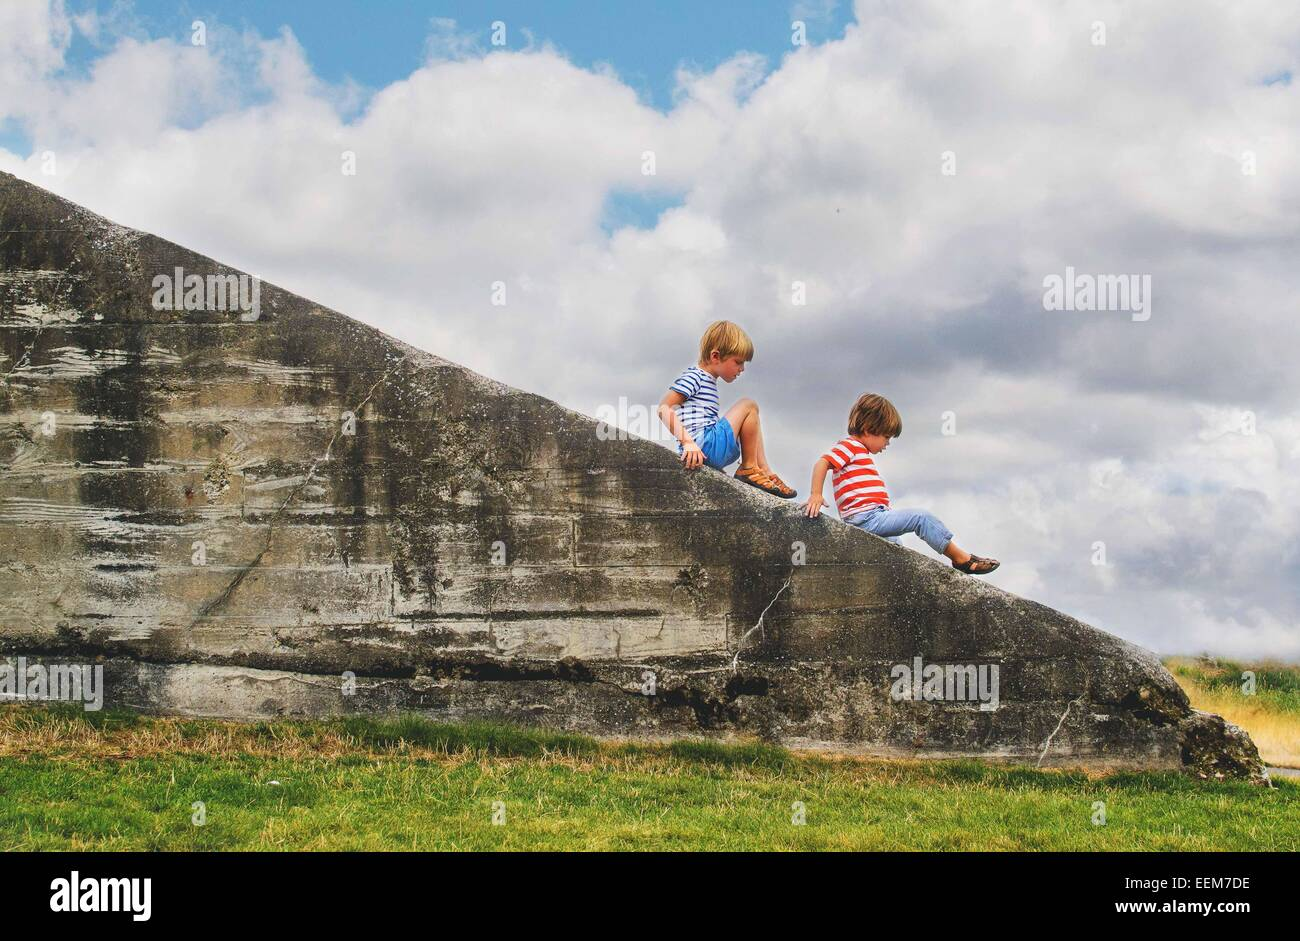 Two young boys (2-3, 4-5) climbing on ledge outside - Stock Image